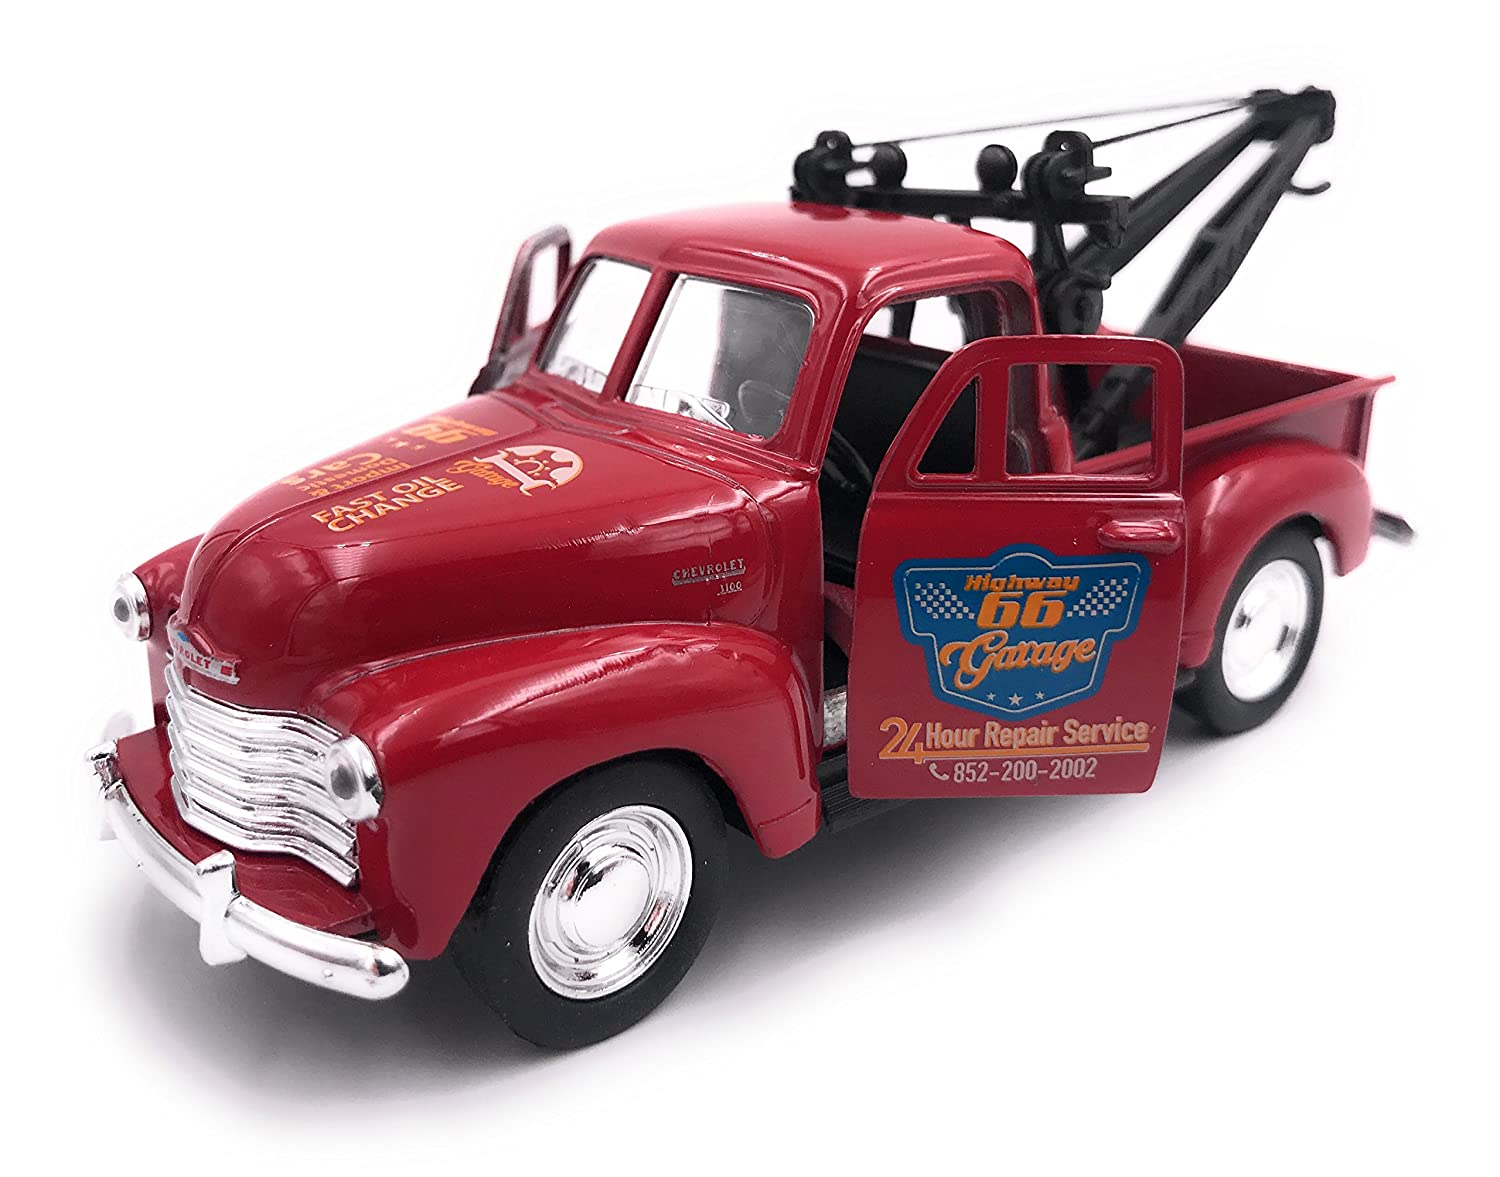 H-Customs Welly 1953 Chevrolet Tow Truck Model Car Auto PRODOTTO CON LICENZA 1: 34-1: 39 Rosso hcm1953chevtowtruckrot2605